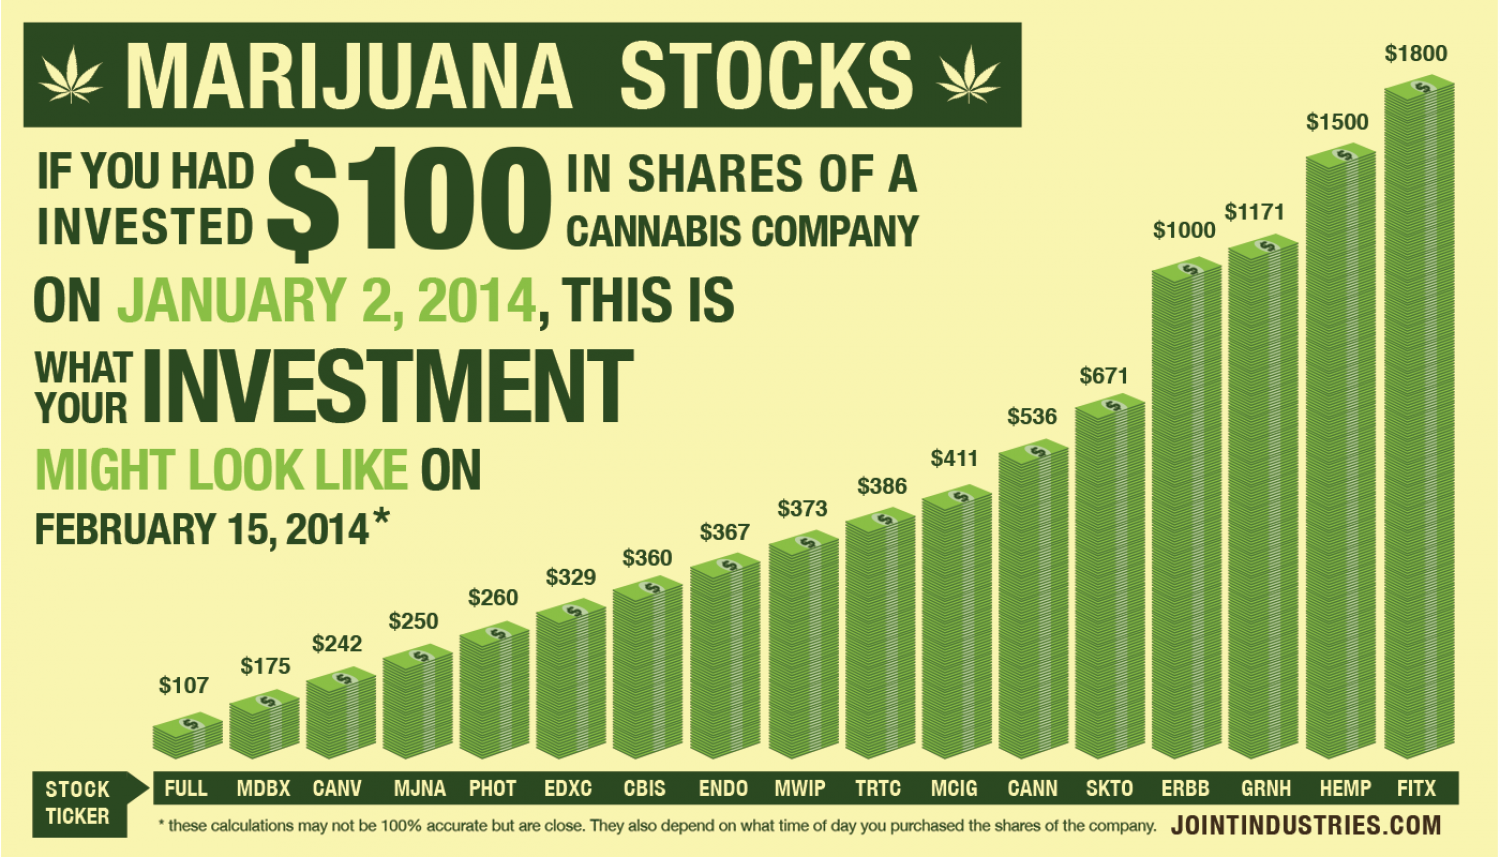 Marijuana Stocks Infographic